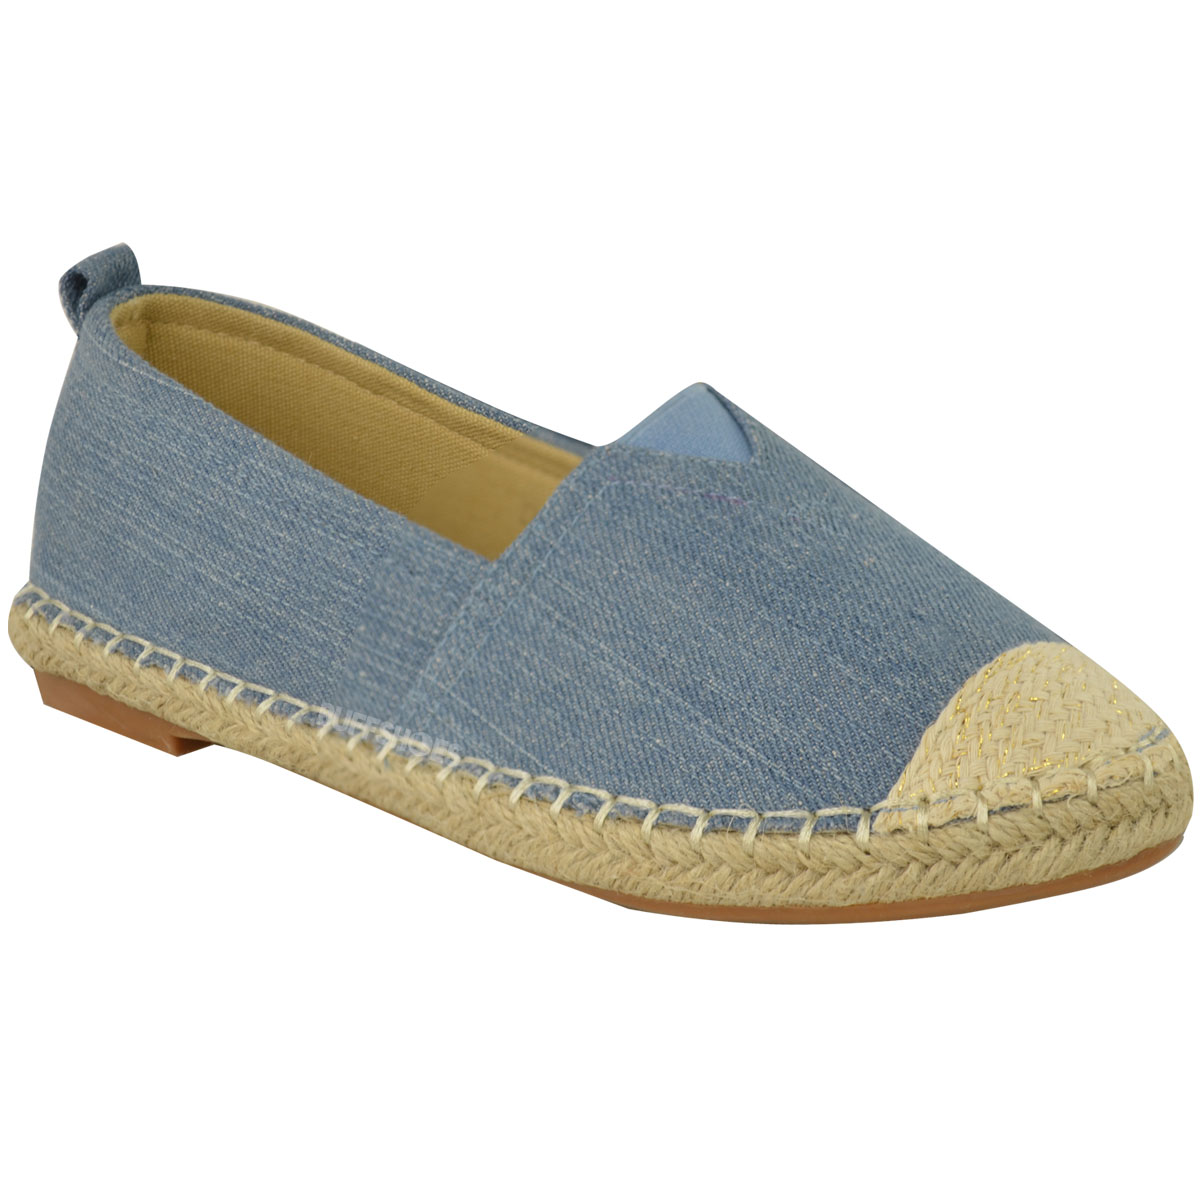 From suede bucks to espadrilles, here are the 10 best shoes to get you through spring and summer.